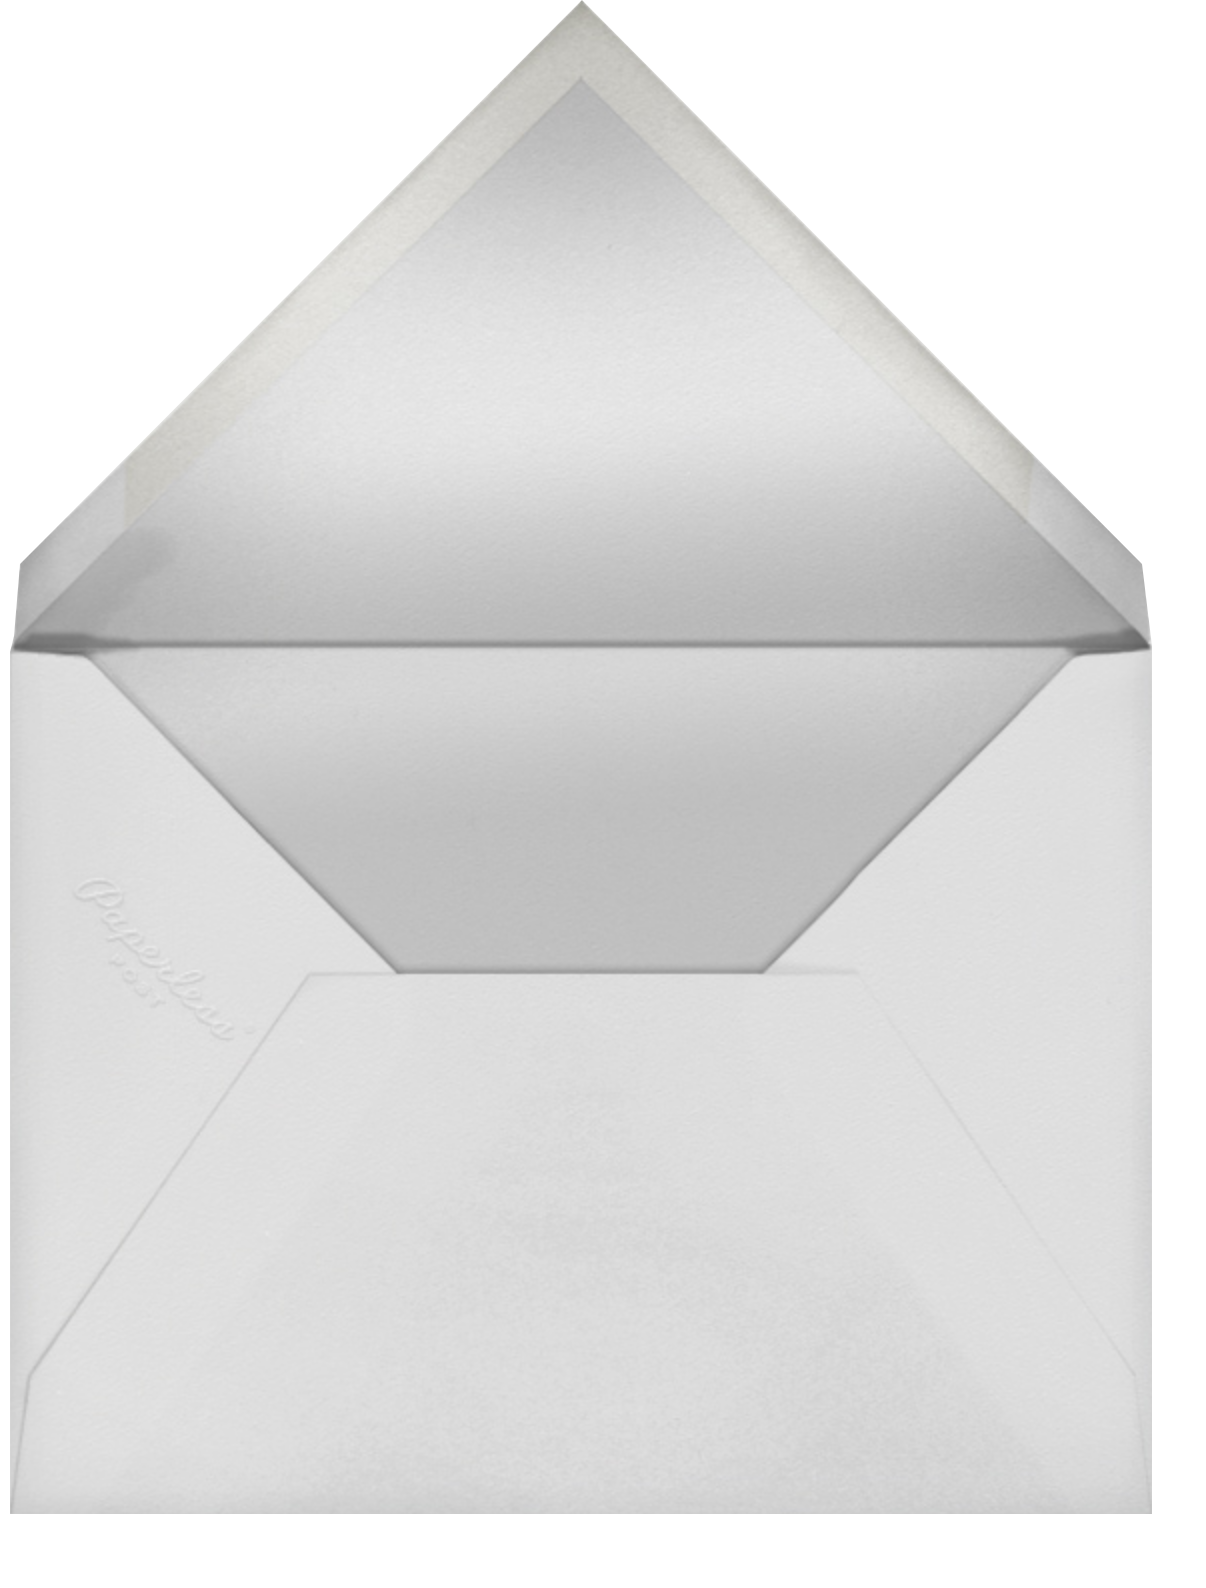 Split Square (Menu) - Paperless Post - Menus - envelope back